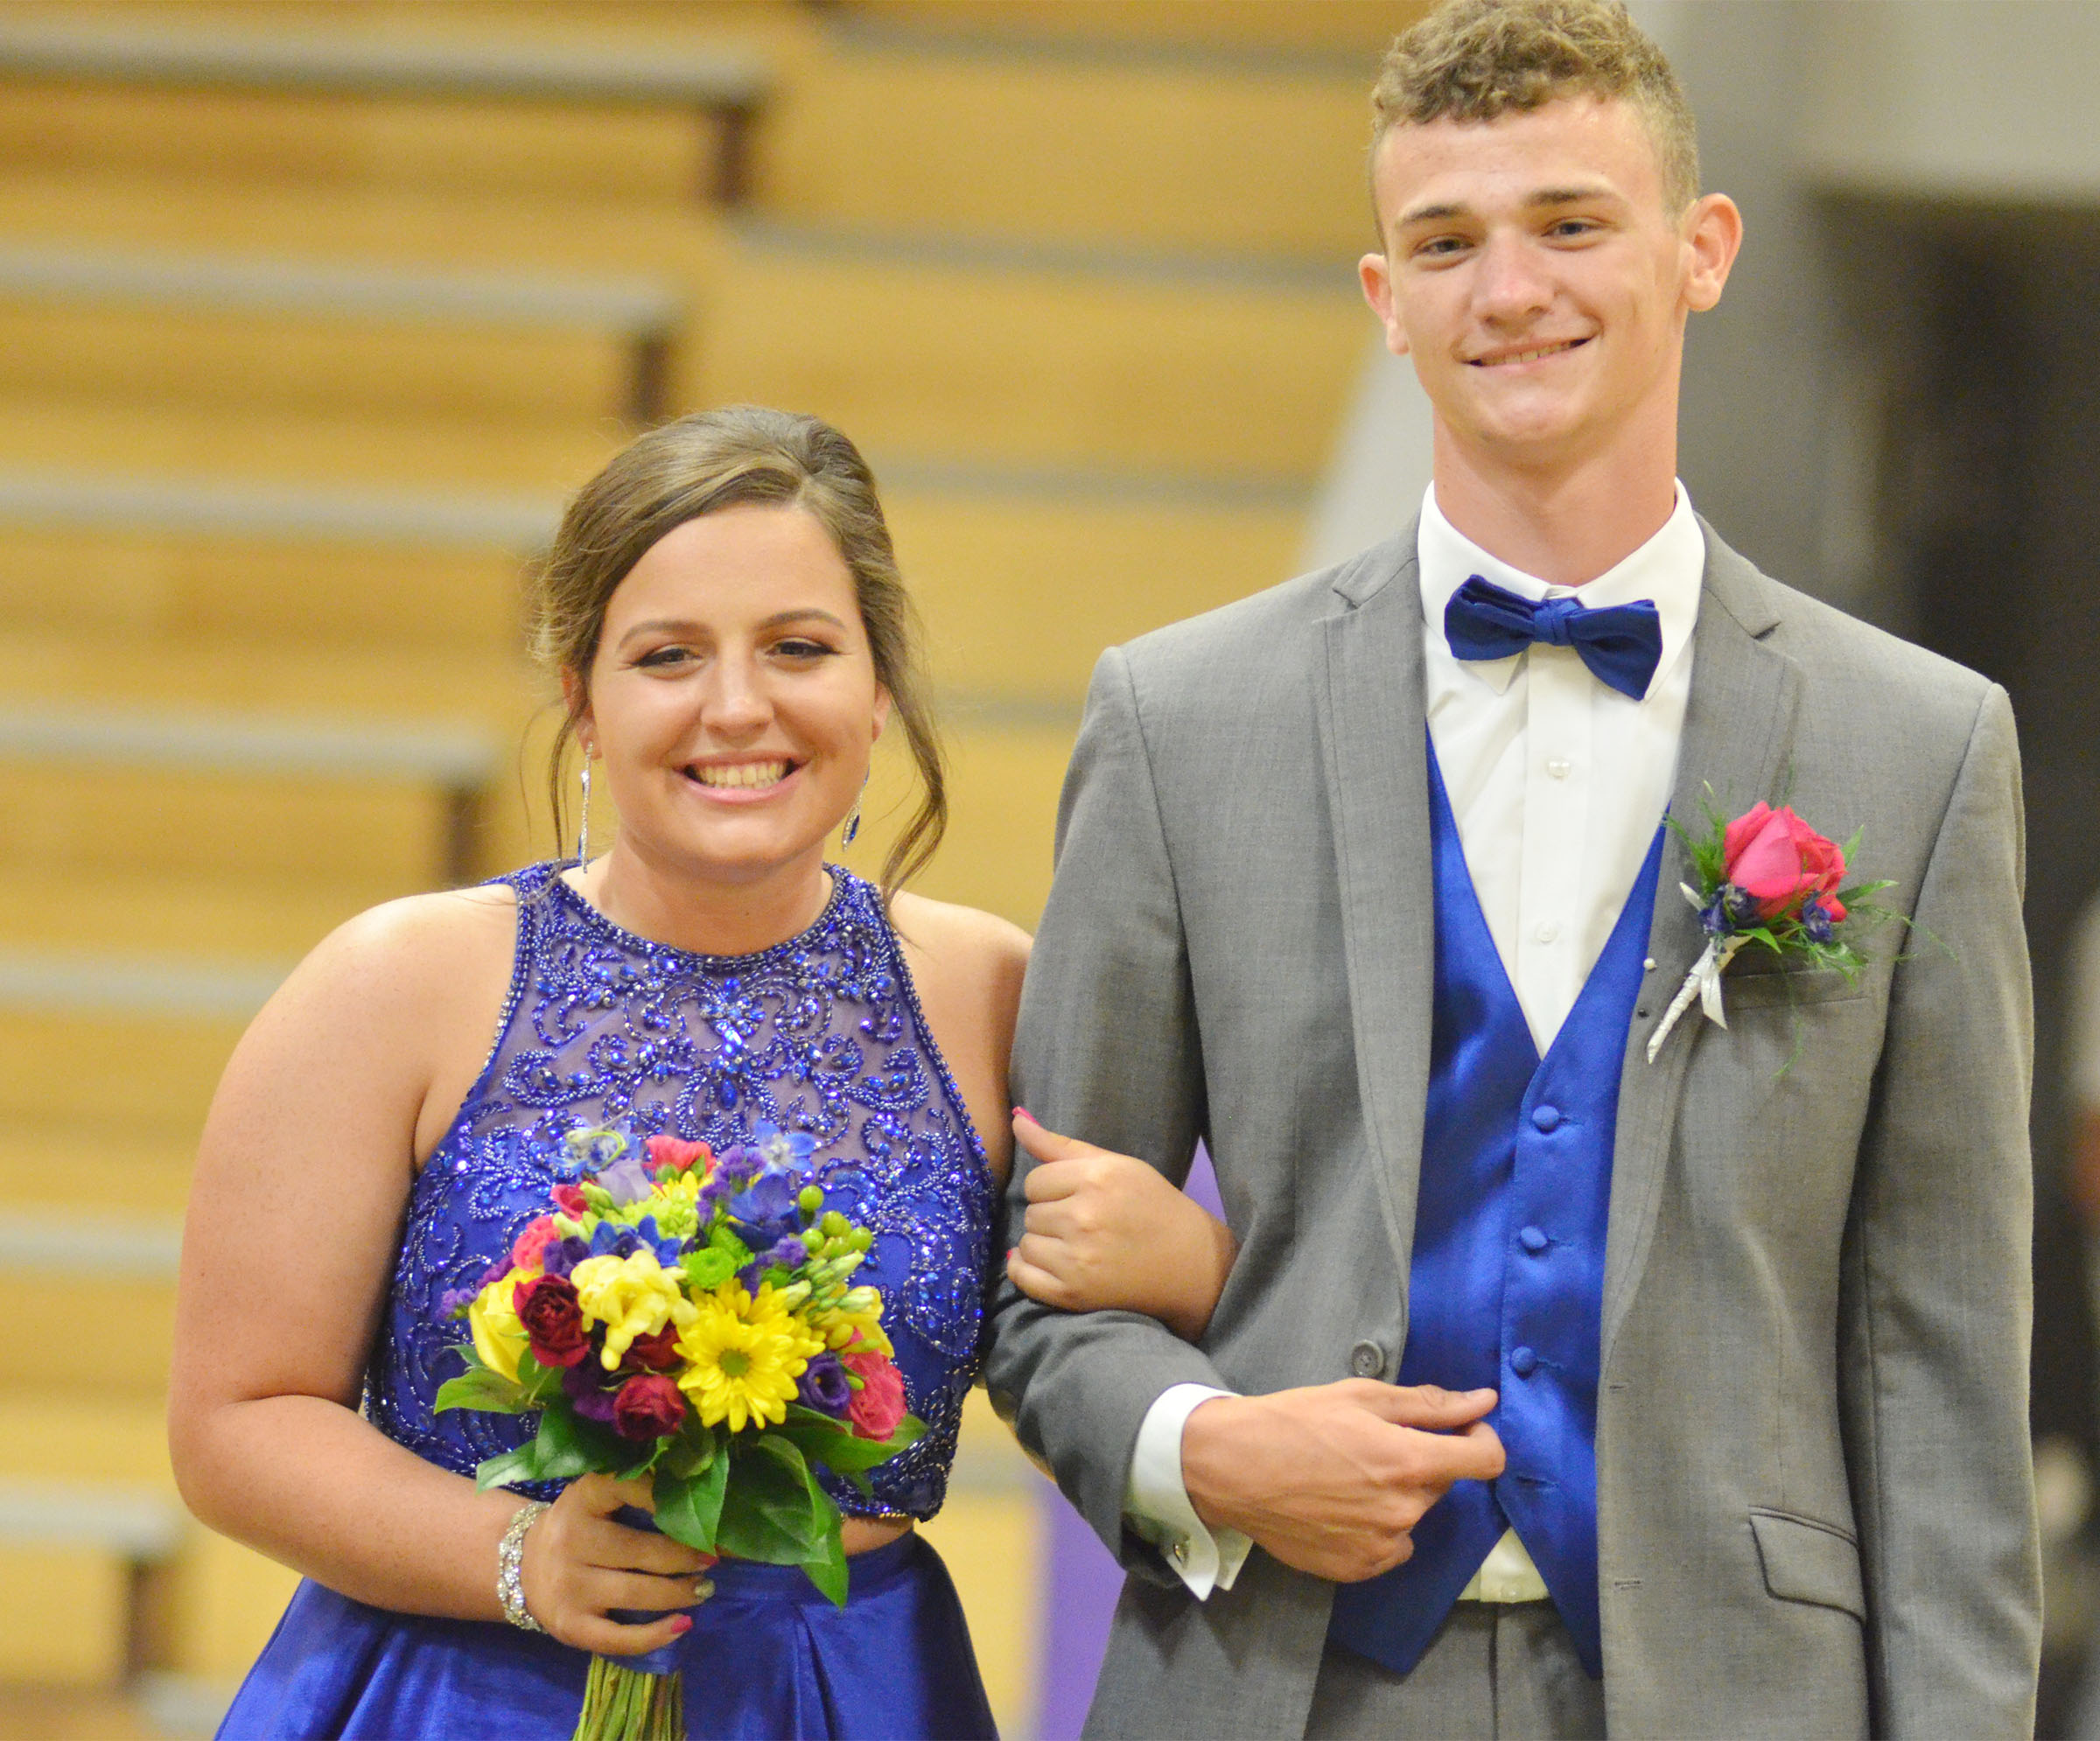 CHS juniors Caitlin Bright and Connor Wilson smile at prom walk.